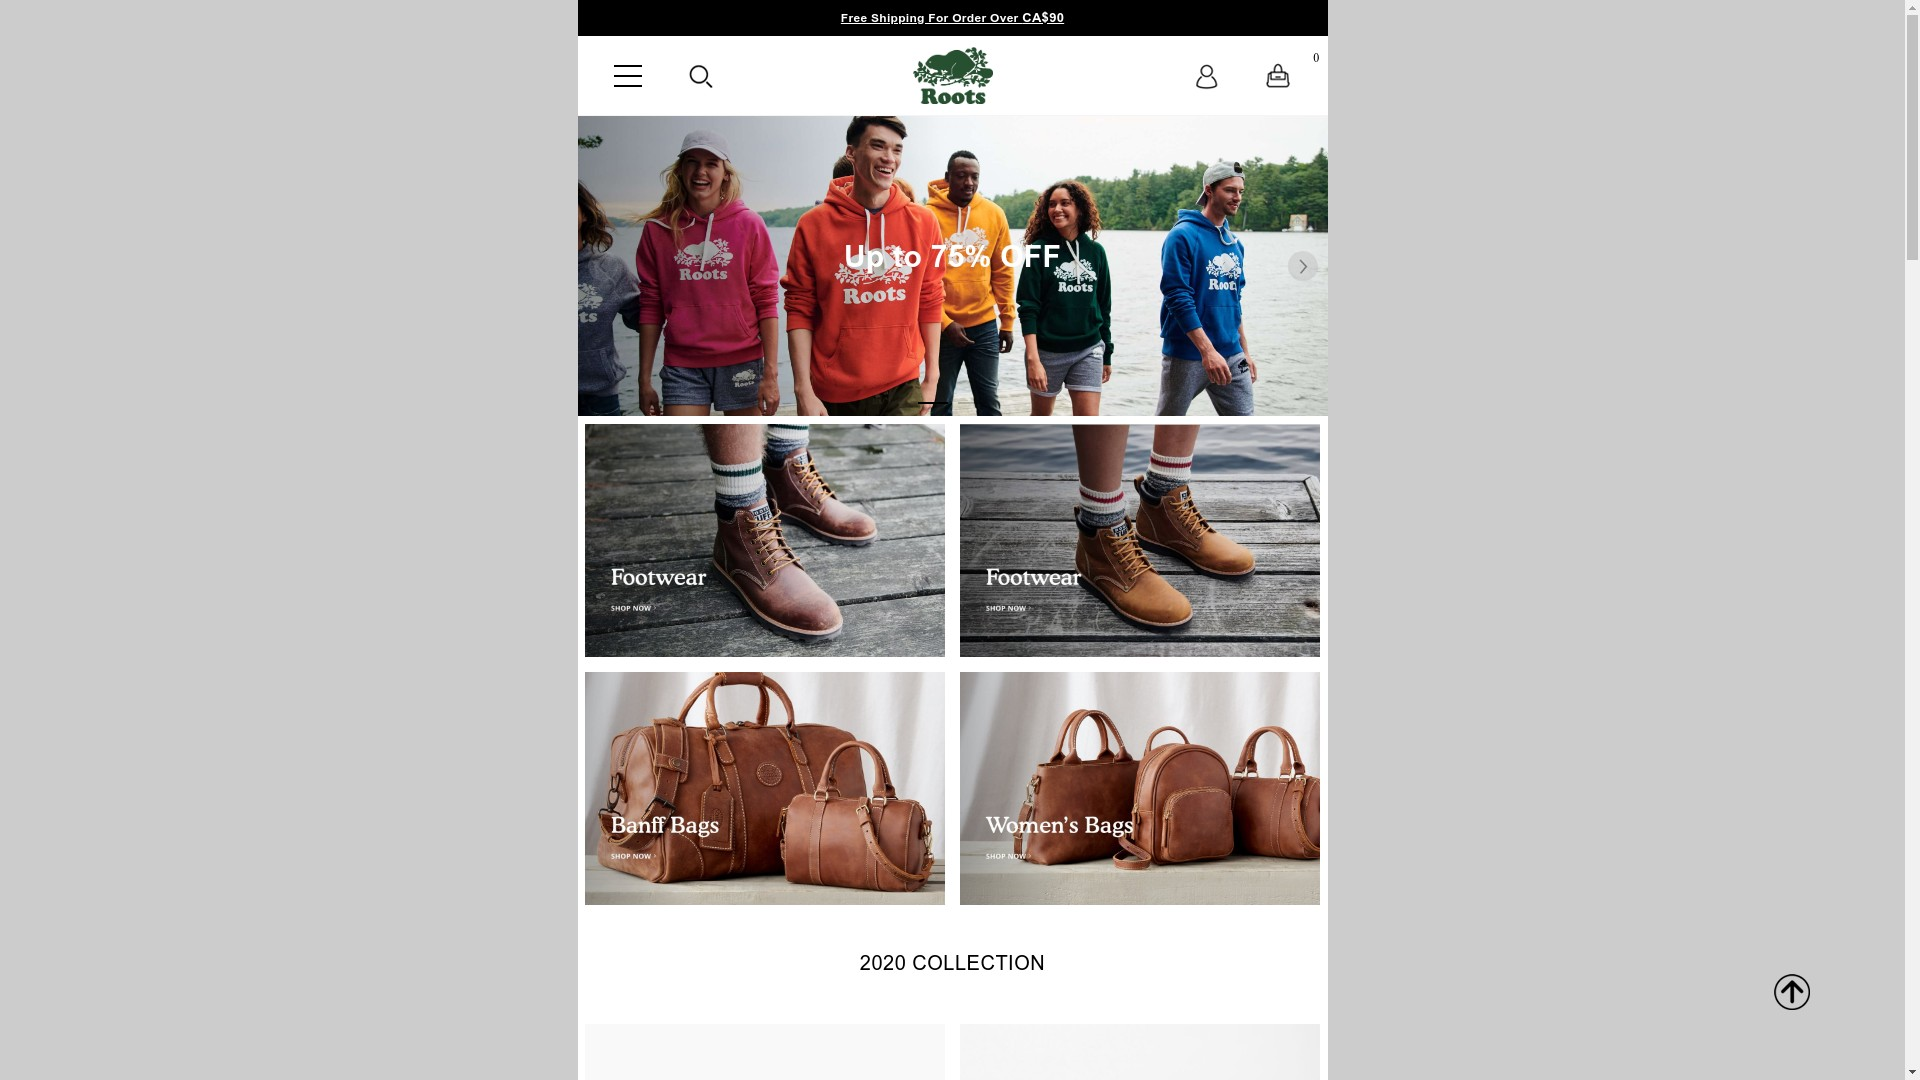 Is Roots Discount Club a Scam? See the Review of the Online Store